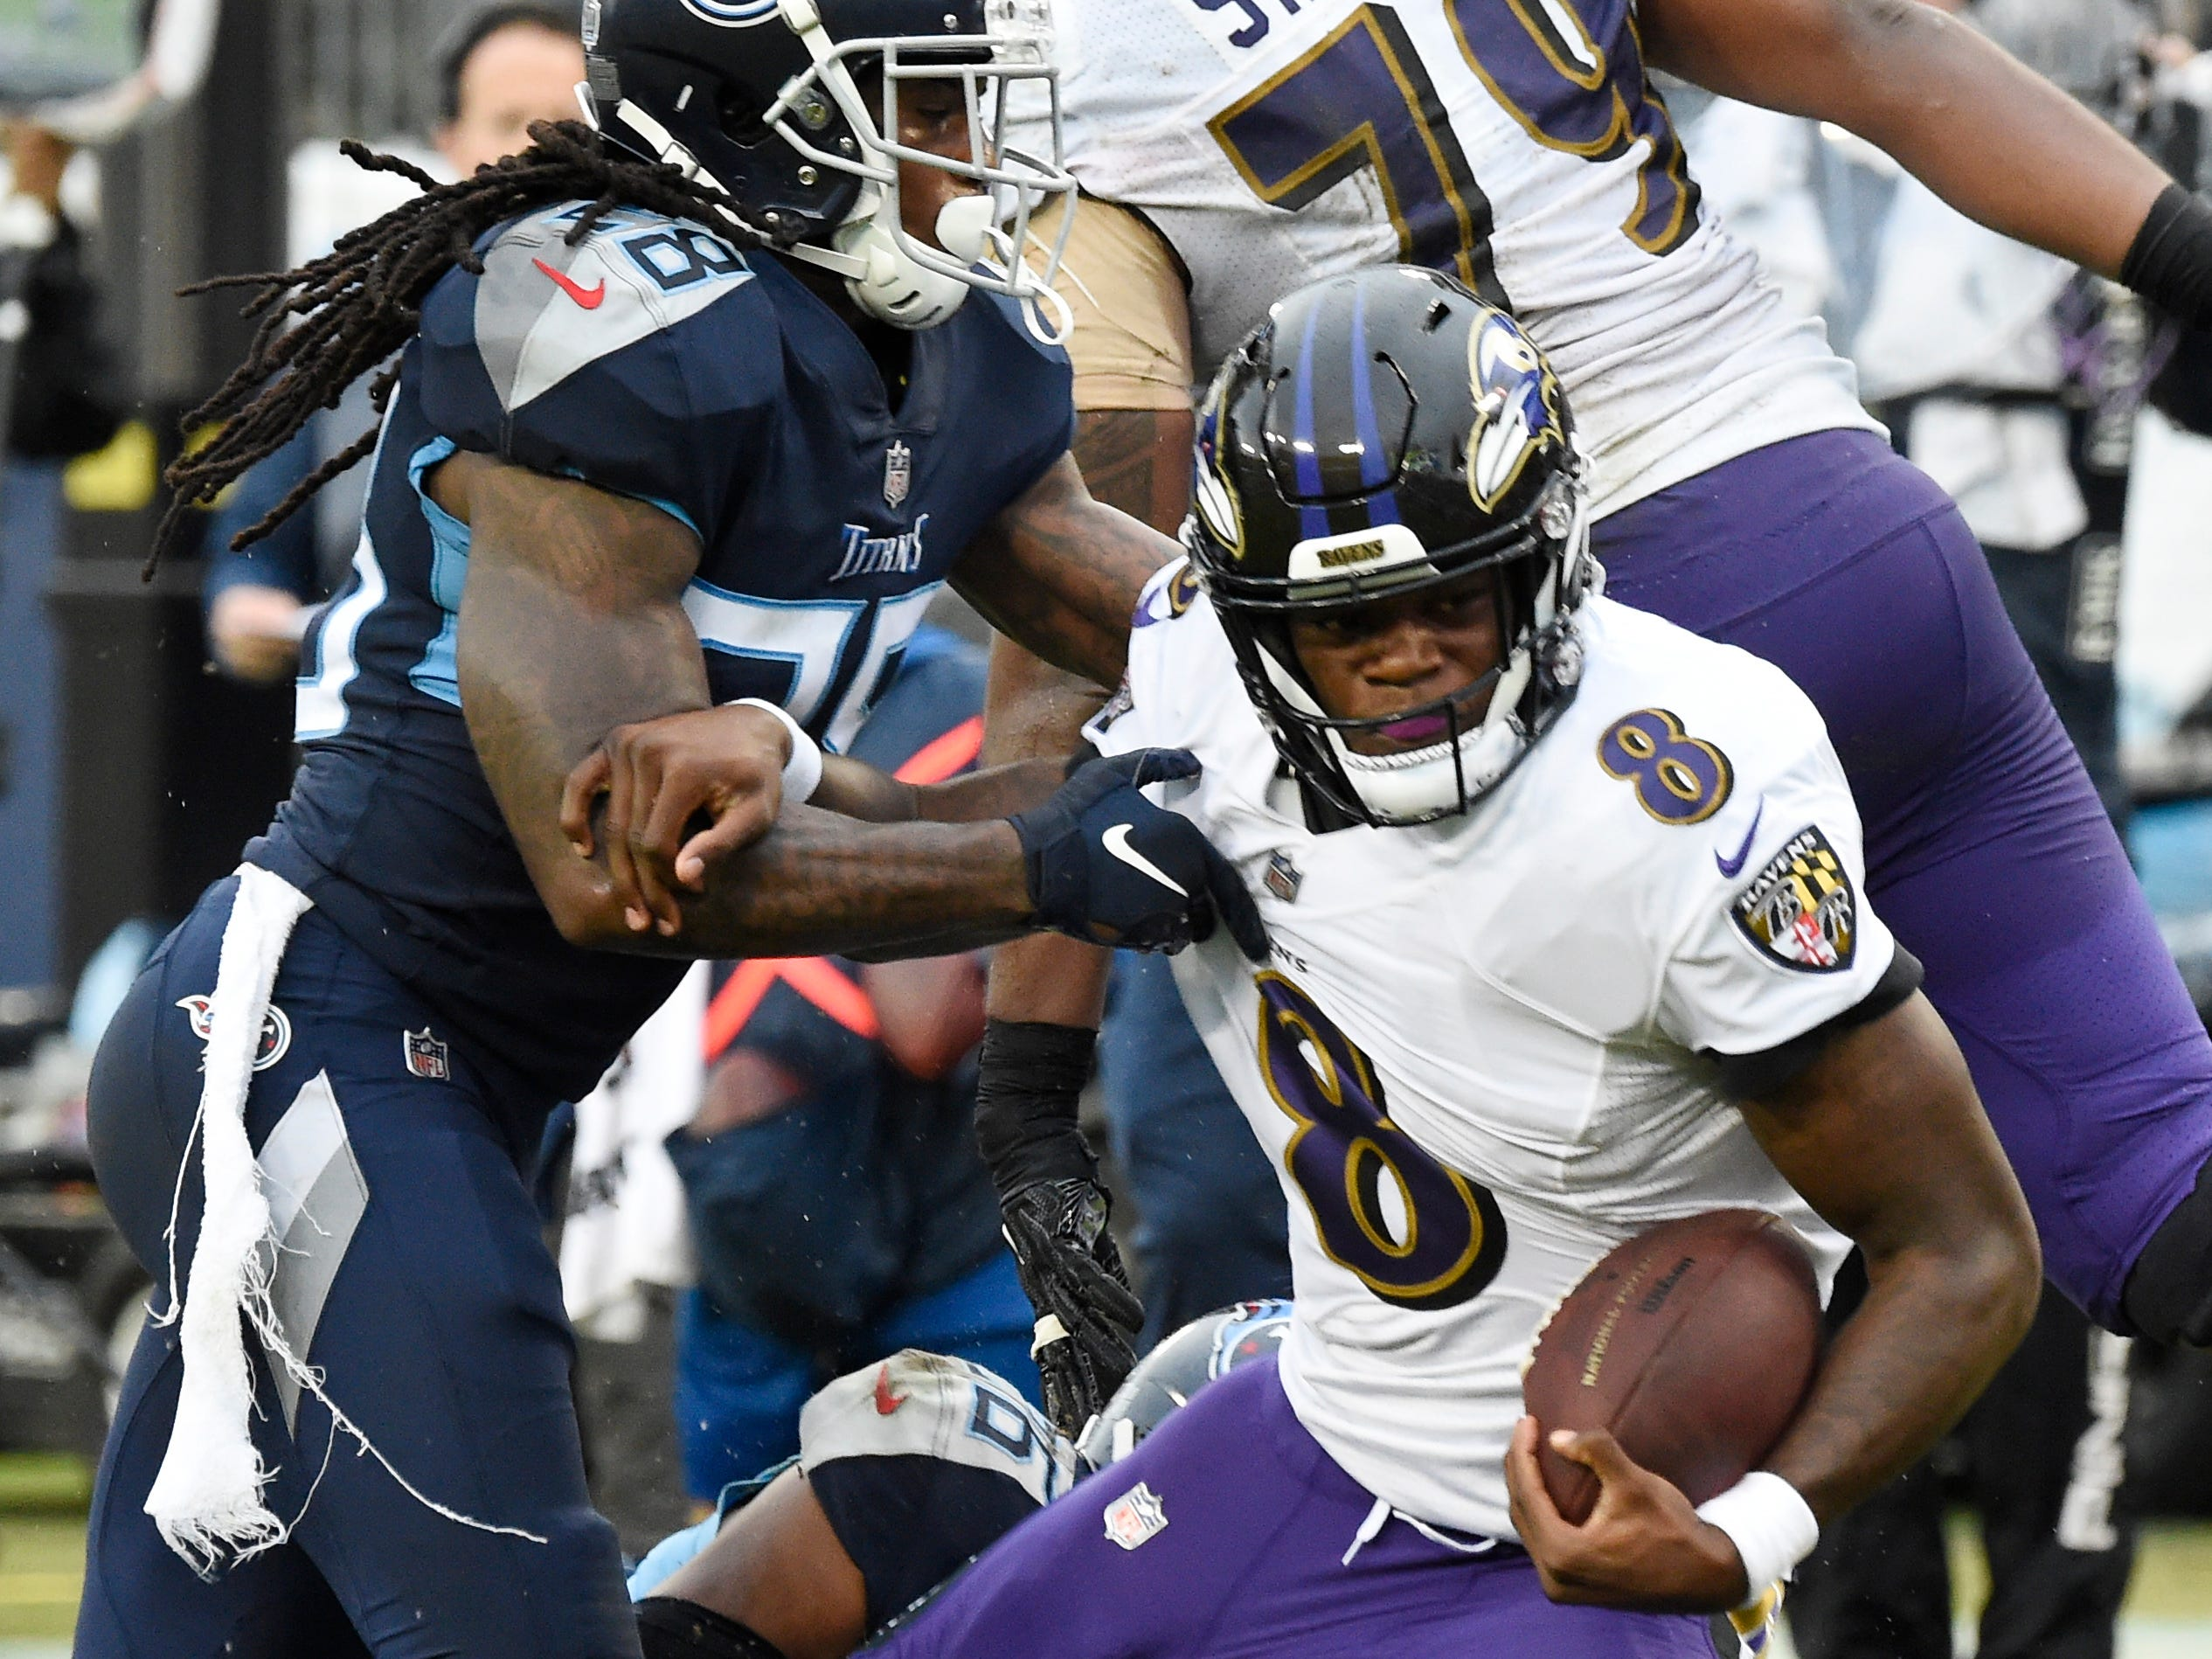 Ravens quarterback Lamar Jackson (8) gets a first down defended by Titans defensive back Kendrick Lewis (28) in the third quarter at Nissan Stadium Sunday, Oct. 14, 2018, in Nashville, Tenn.